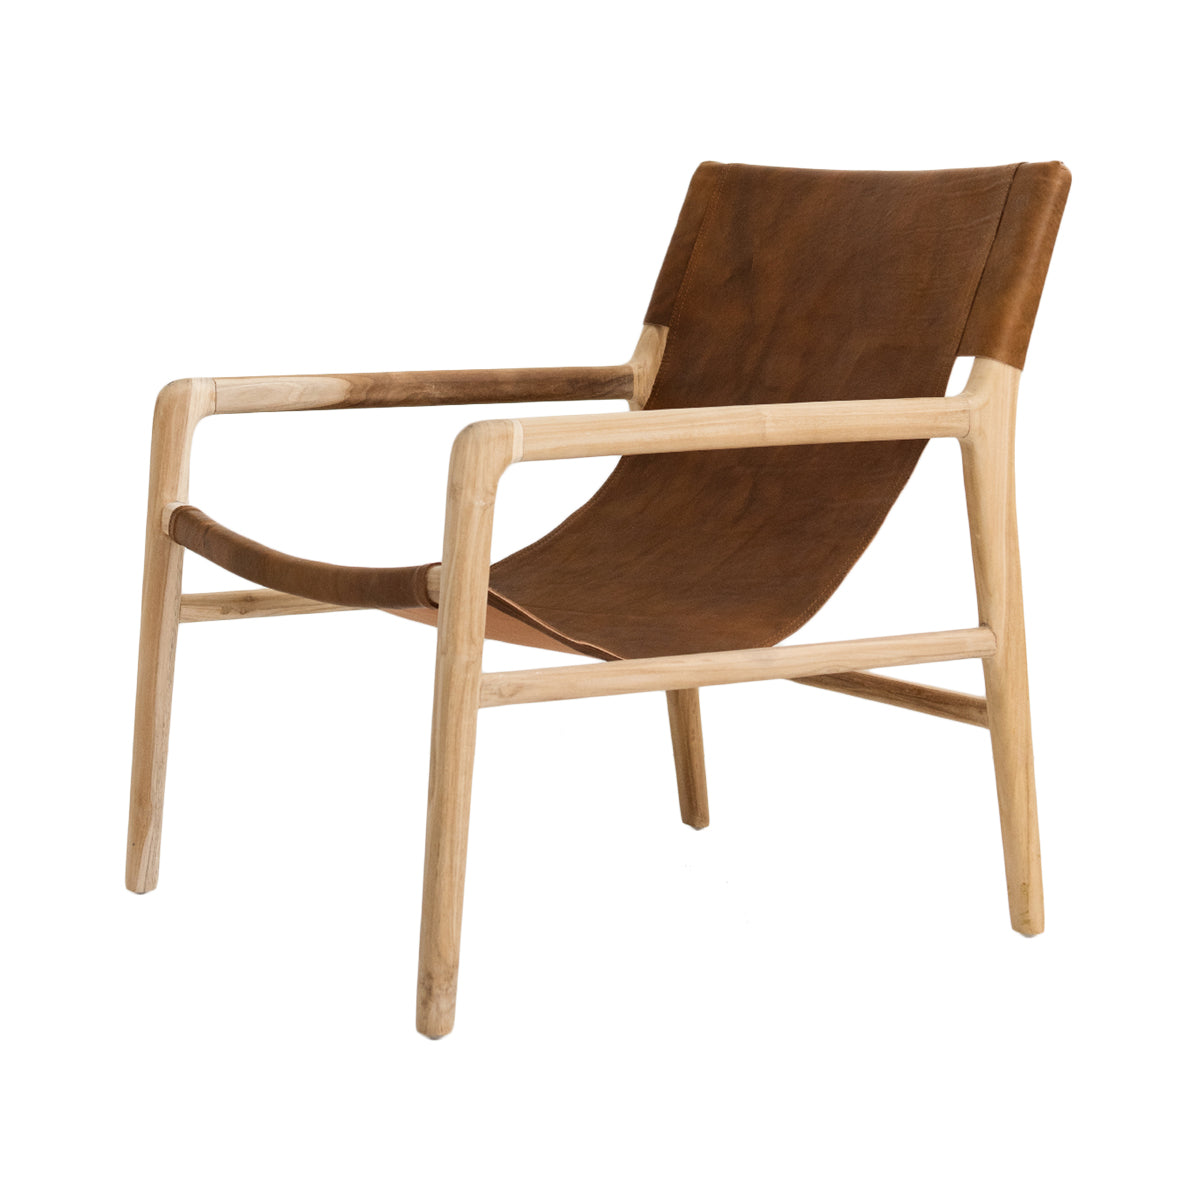 Bella Armchair - Tan Leather